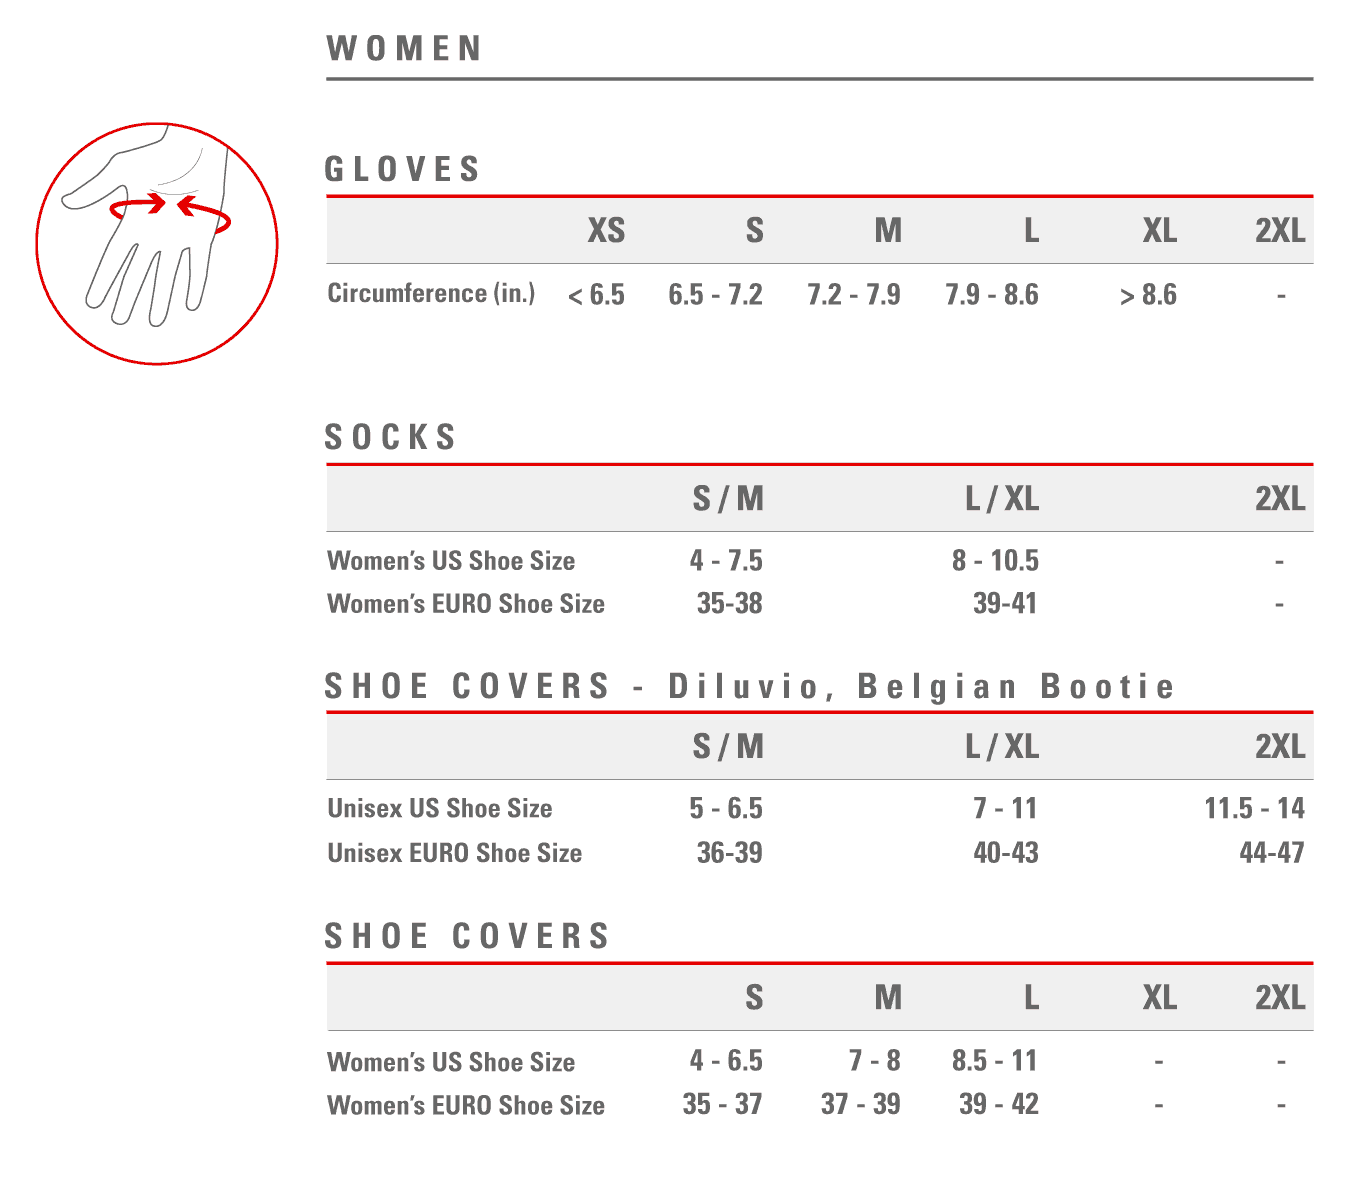 Castelli women's shoecover sizing